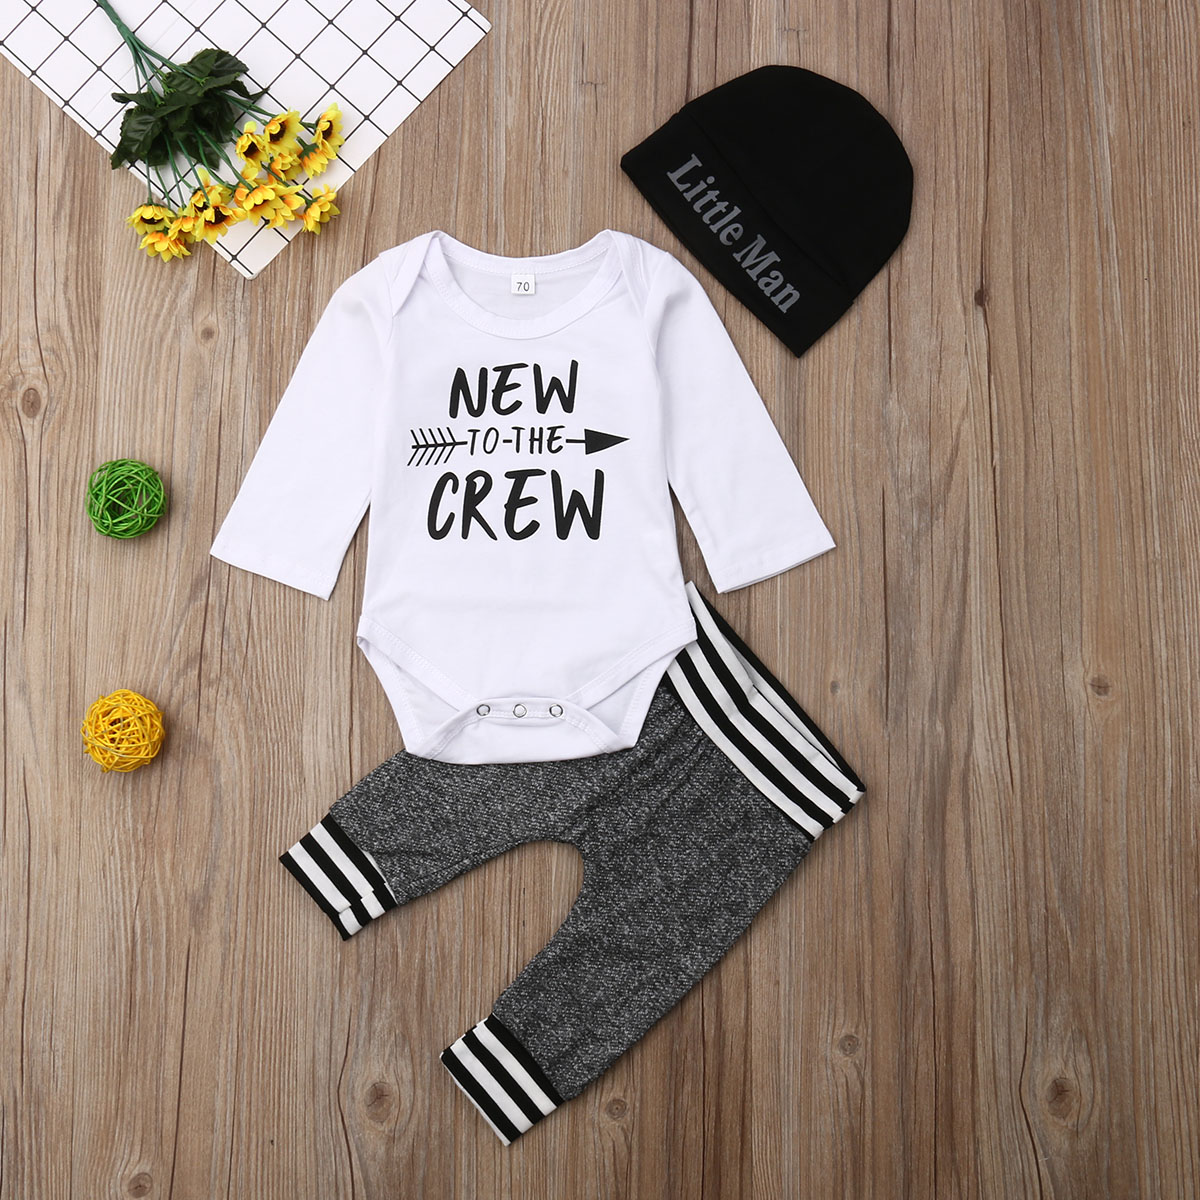 Baby Boy Girl Clothes Arrow and Letters Print Summer Cotton Sleeveless Outfits Set Tops and Short Pants